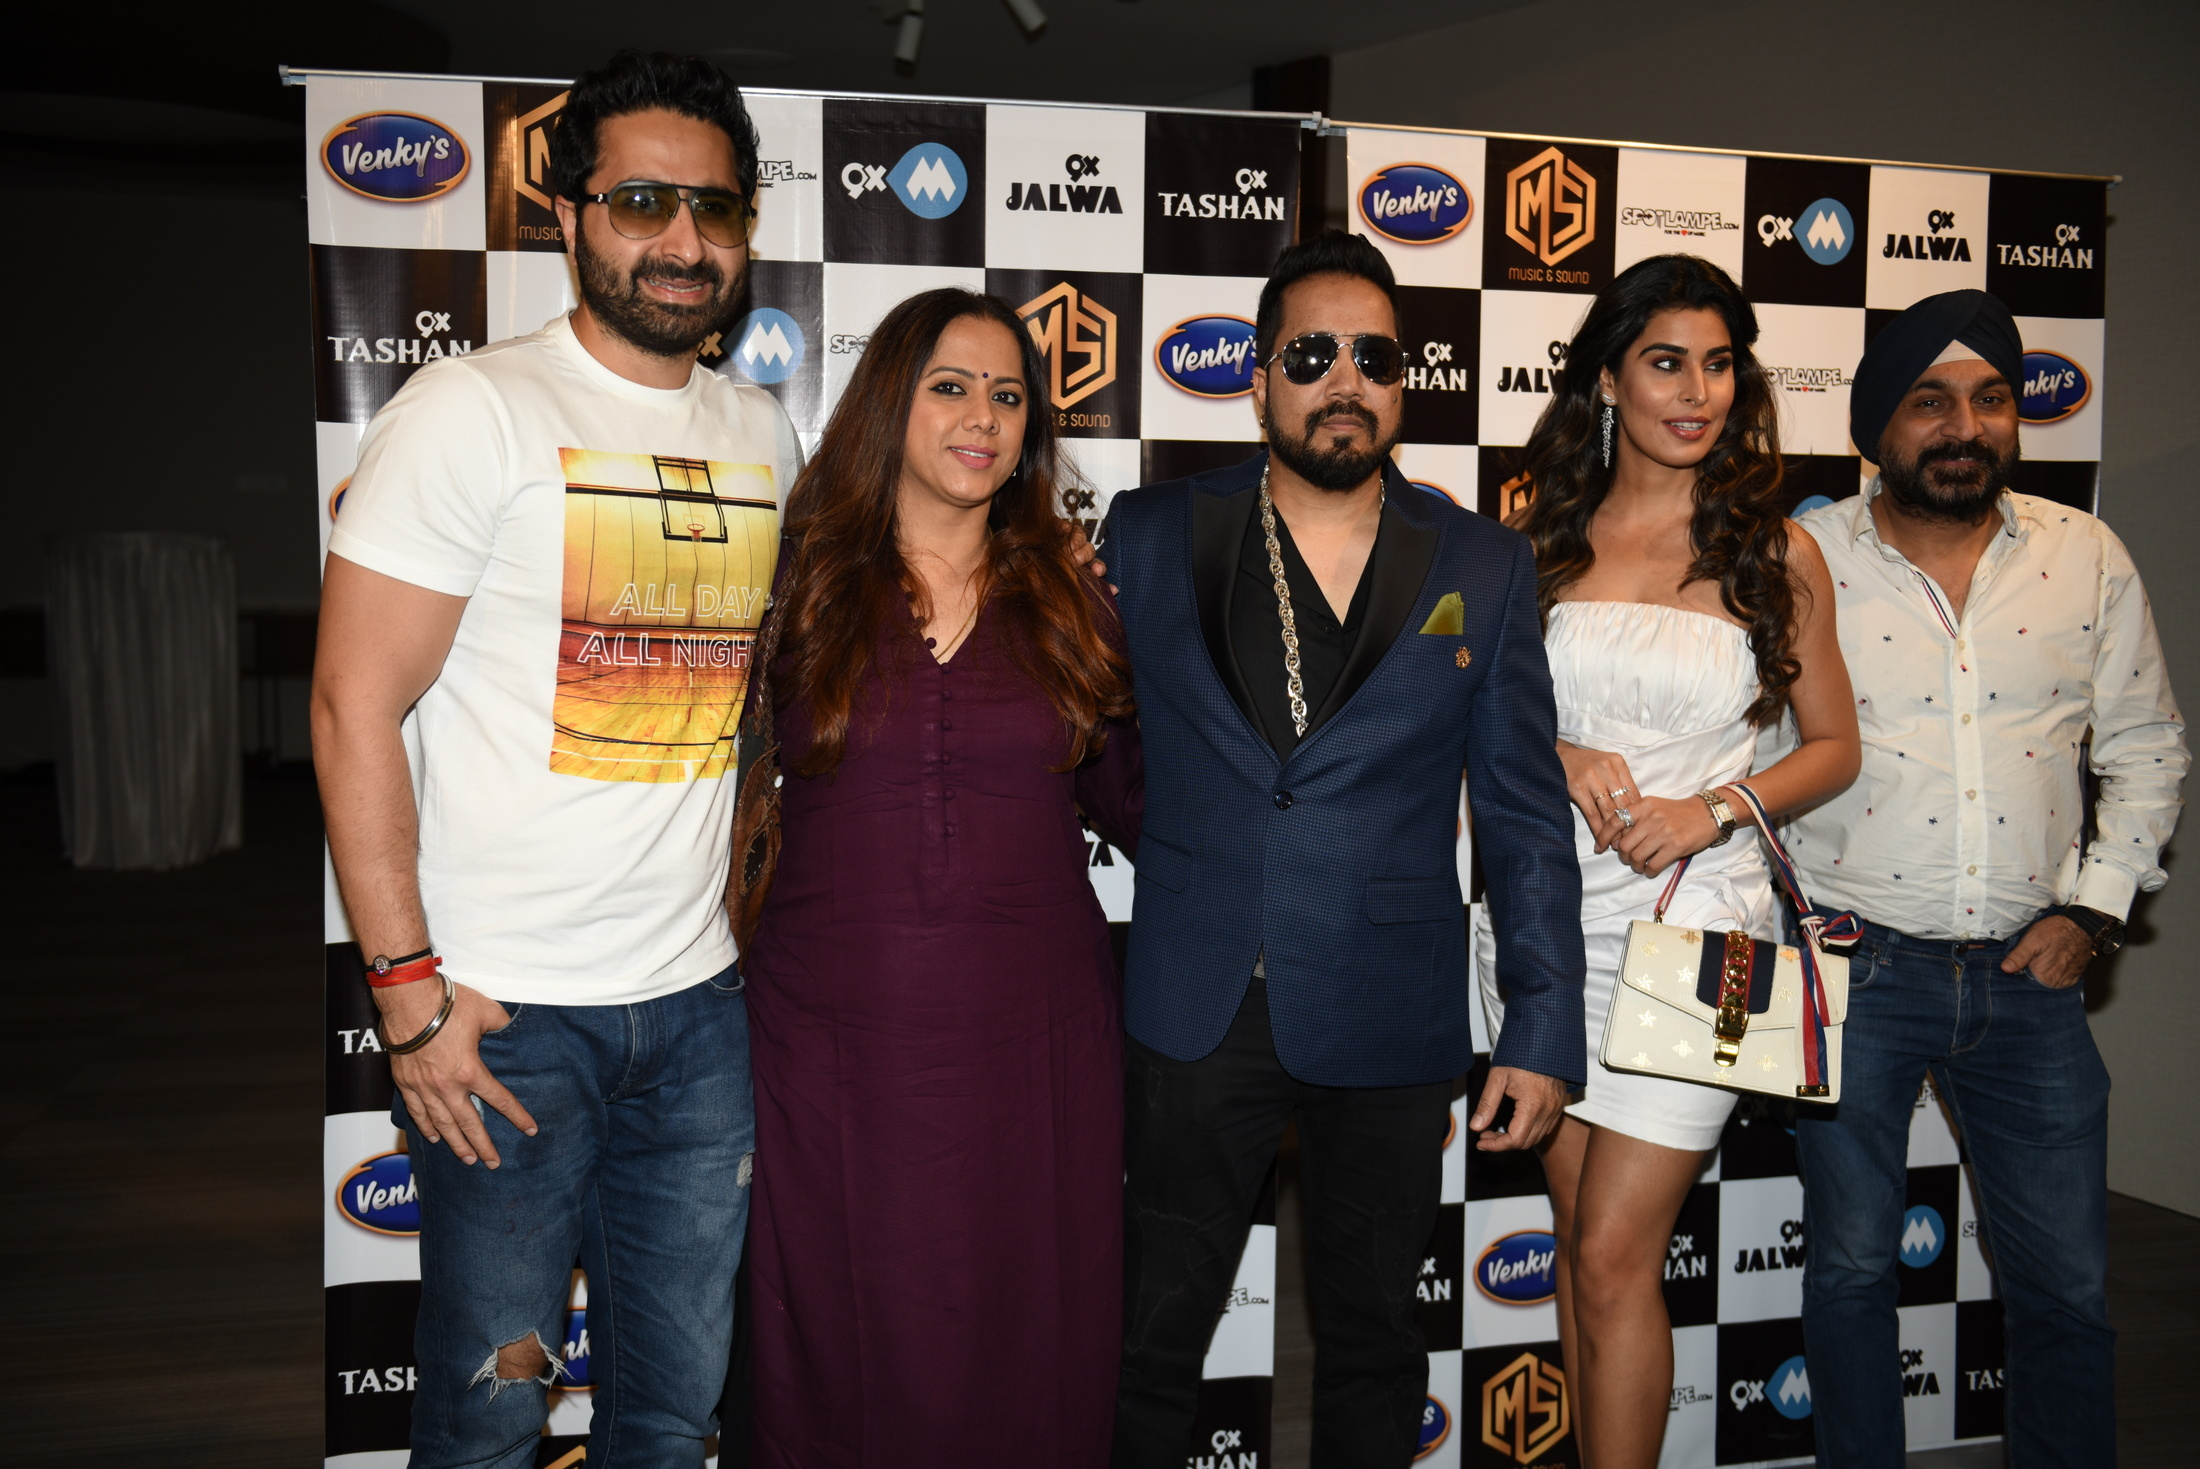 5. DJ Khushi, Rajitta Hemwaani, Mika SIngh, Aarti Khetarpal, Raj Suri during his new single BELLY RING song launch KPP_9025